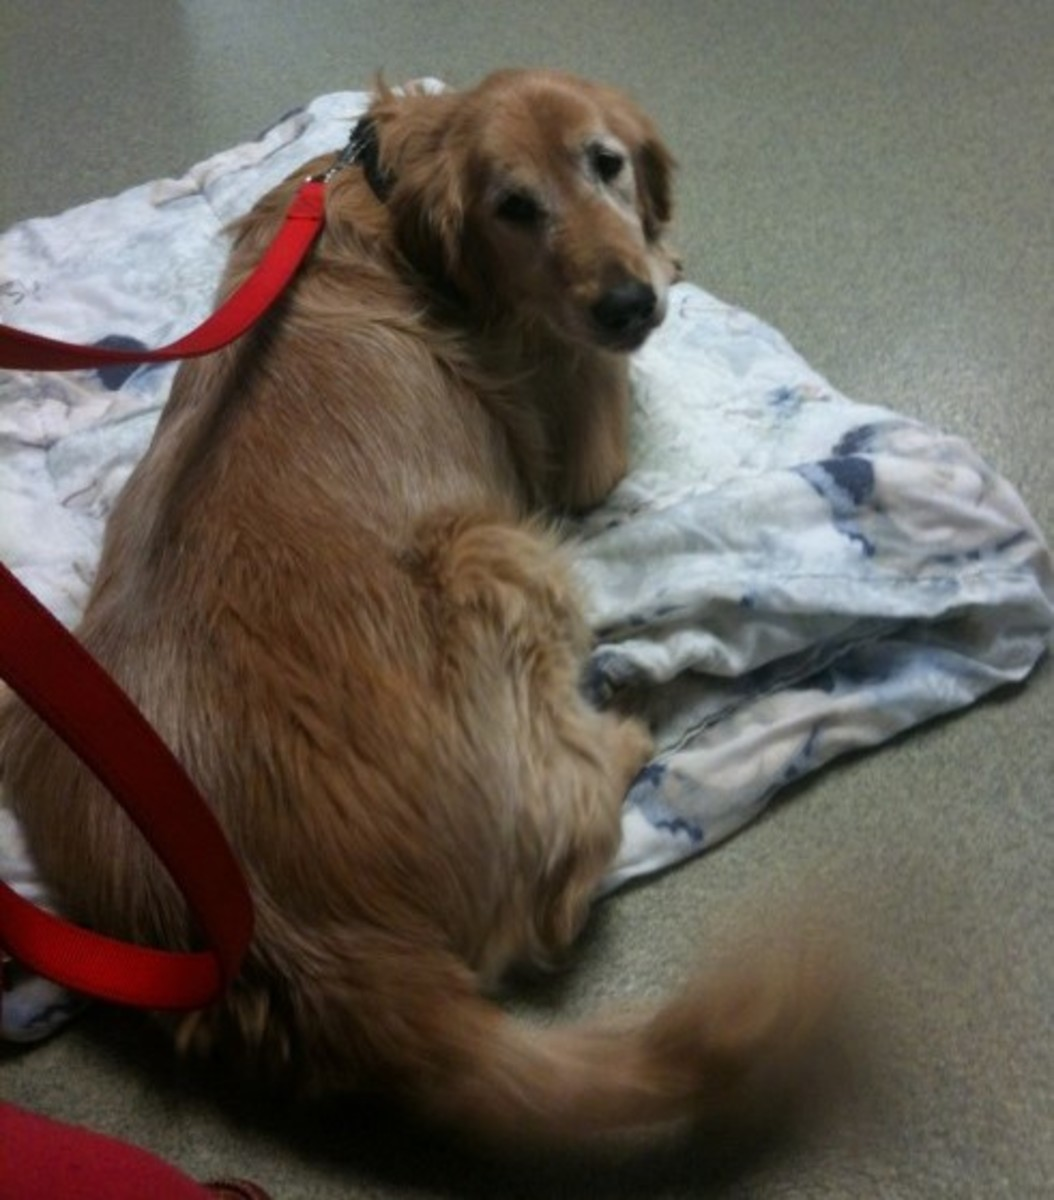 Amber at the hospital - her last day.  Making that decision in putting a pet down is one of the toughest you'll have to make.